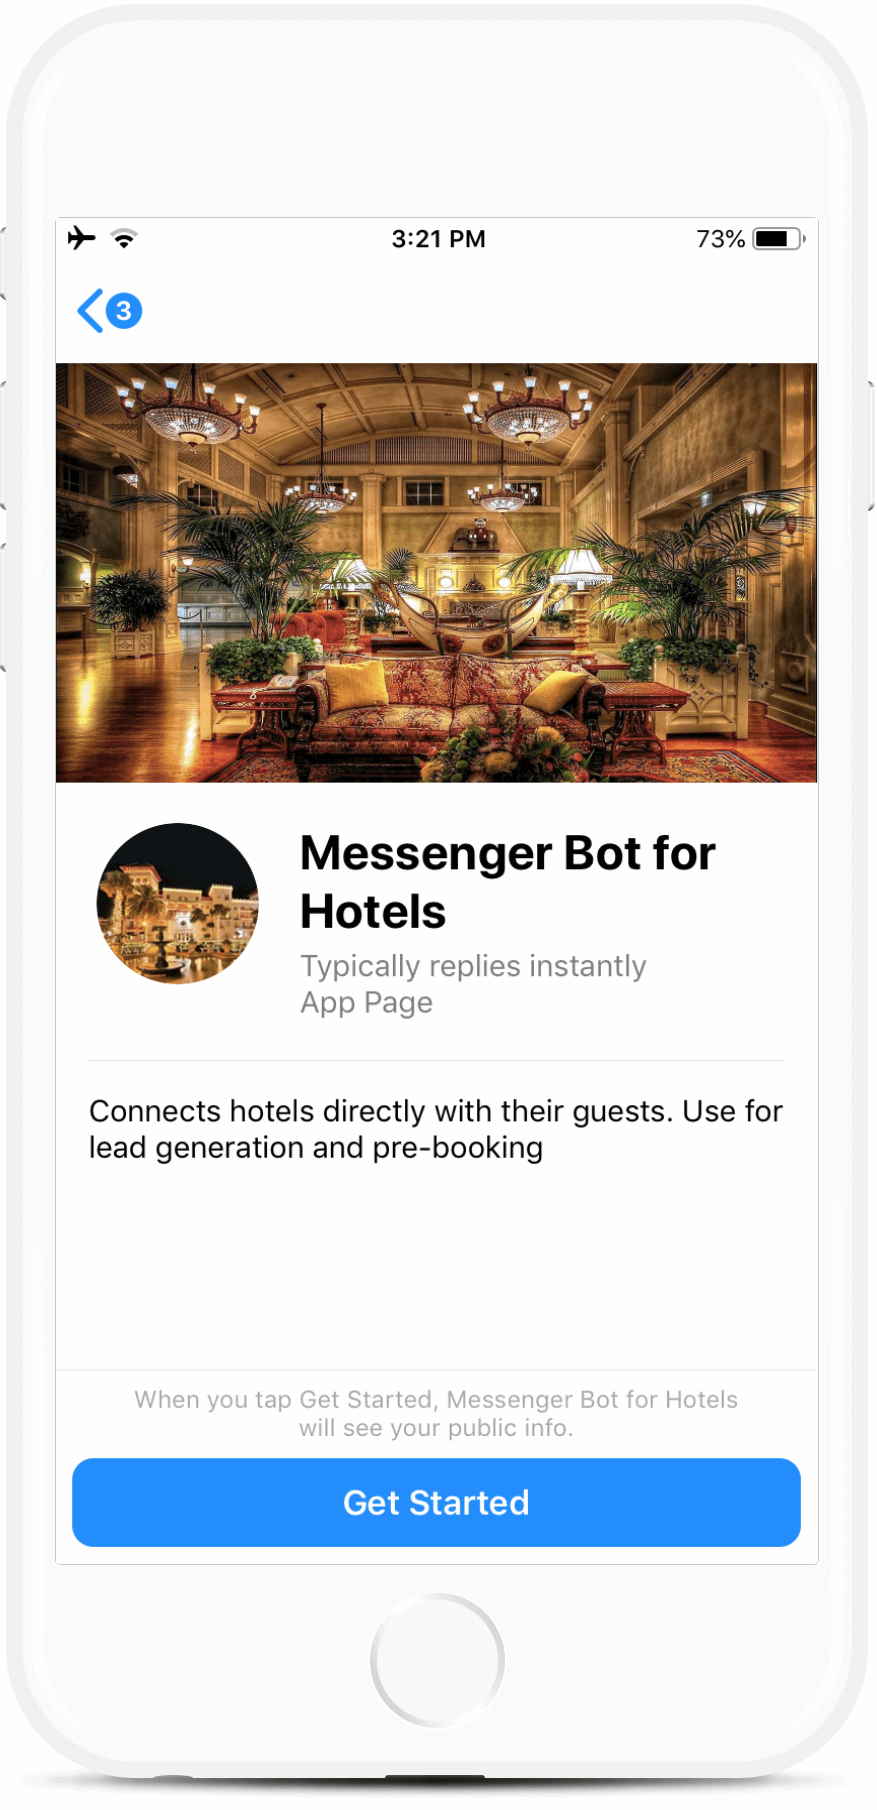 Messenger Bot for Hotels